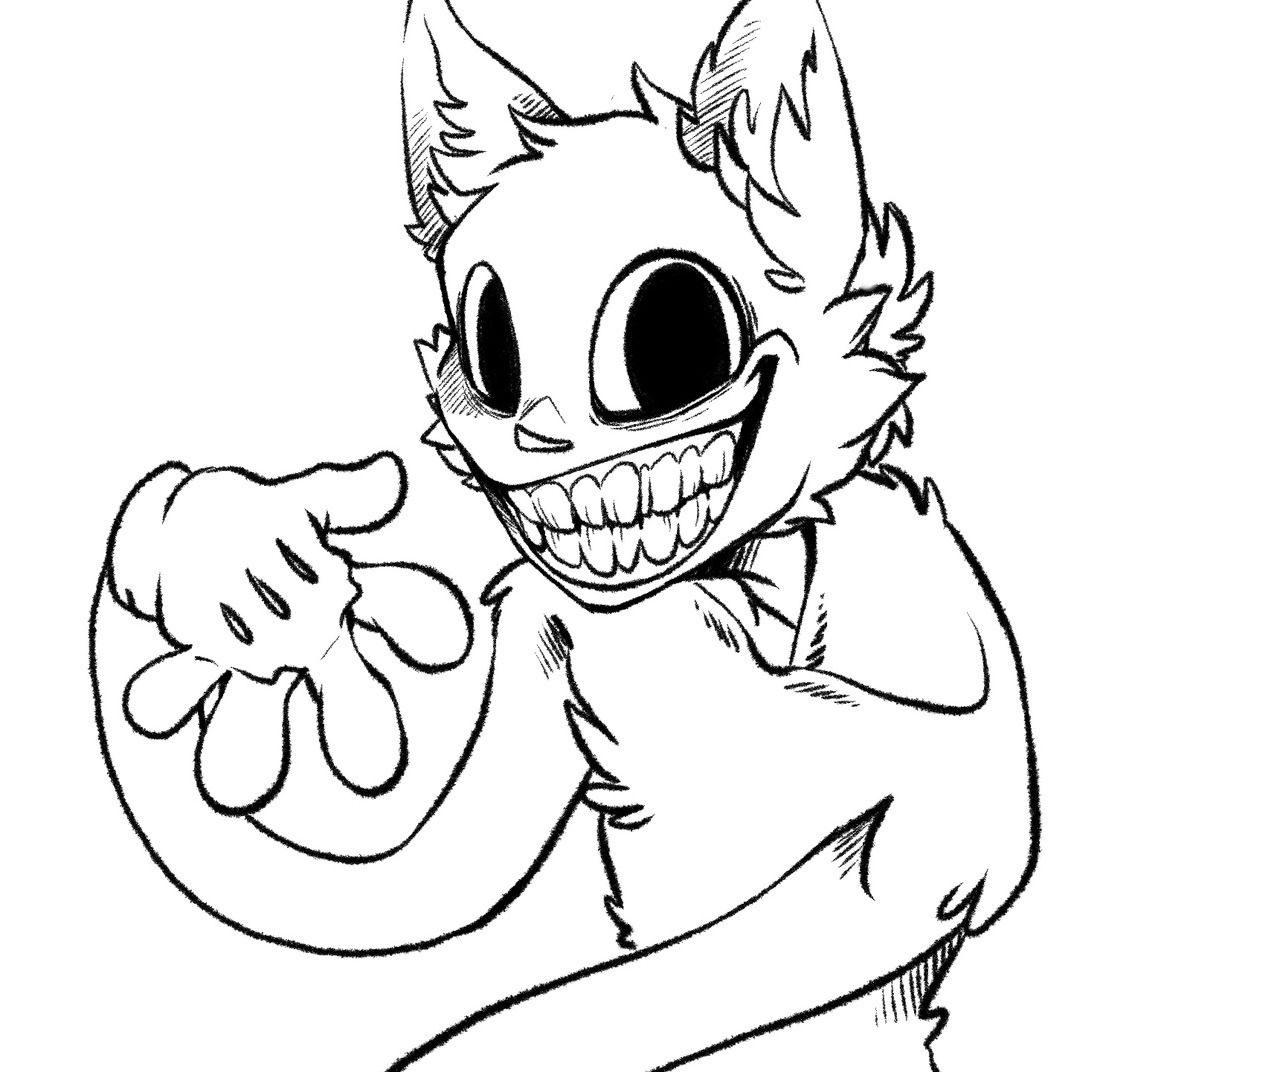 Can you draw cartoon cat made by Trevor Henderson